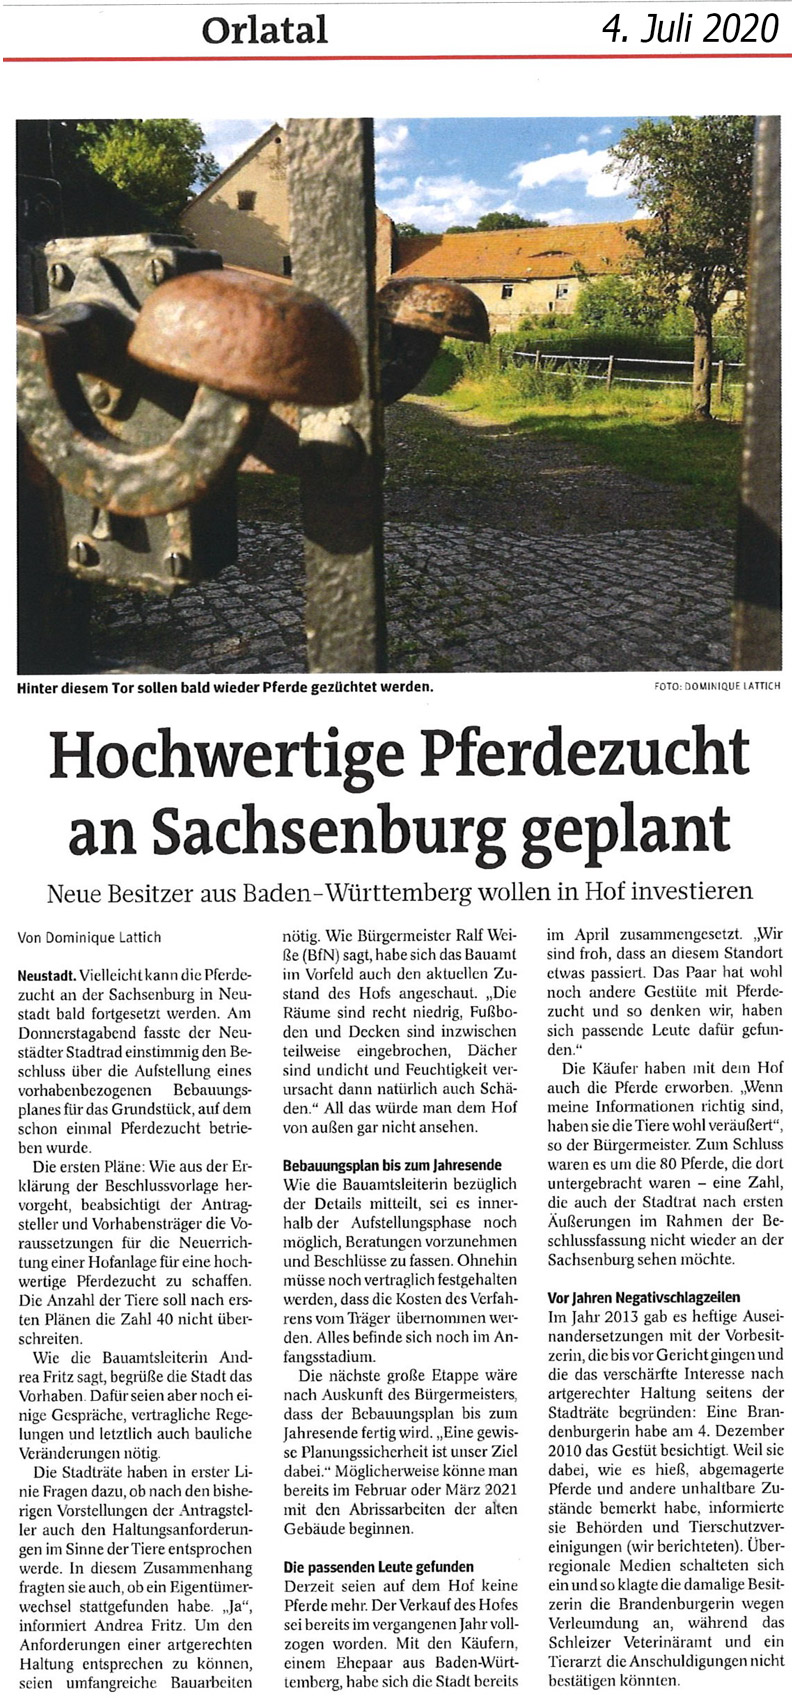 Press release Sachsenburg